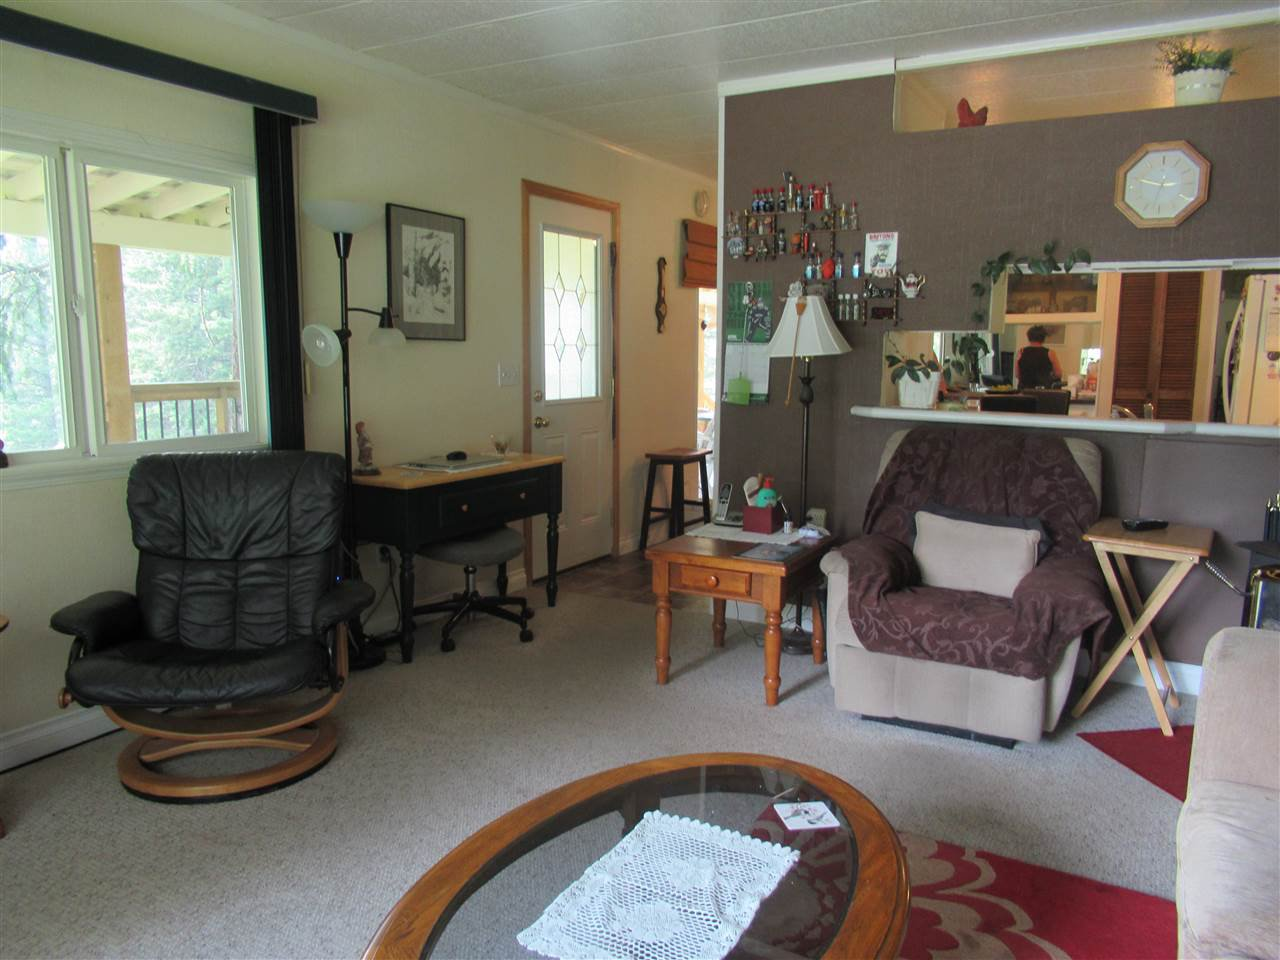 Photo 5: Photos: 1224 DESAUTEL Road in Williams Lake: Williams Lake - Rural East Manufactured Home for sale (Williams Lake (Zone 27))  : MLS®# R2376873